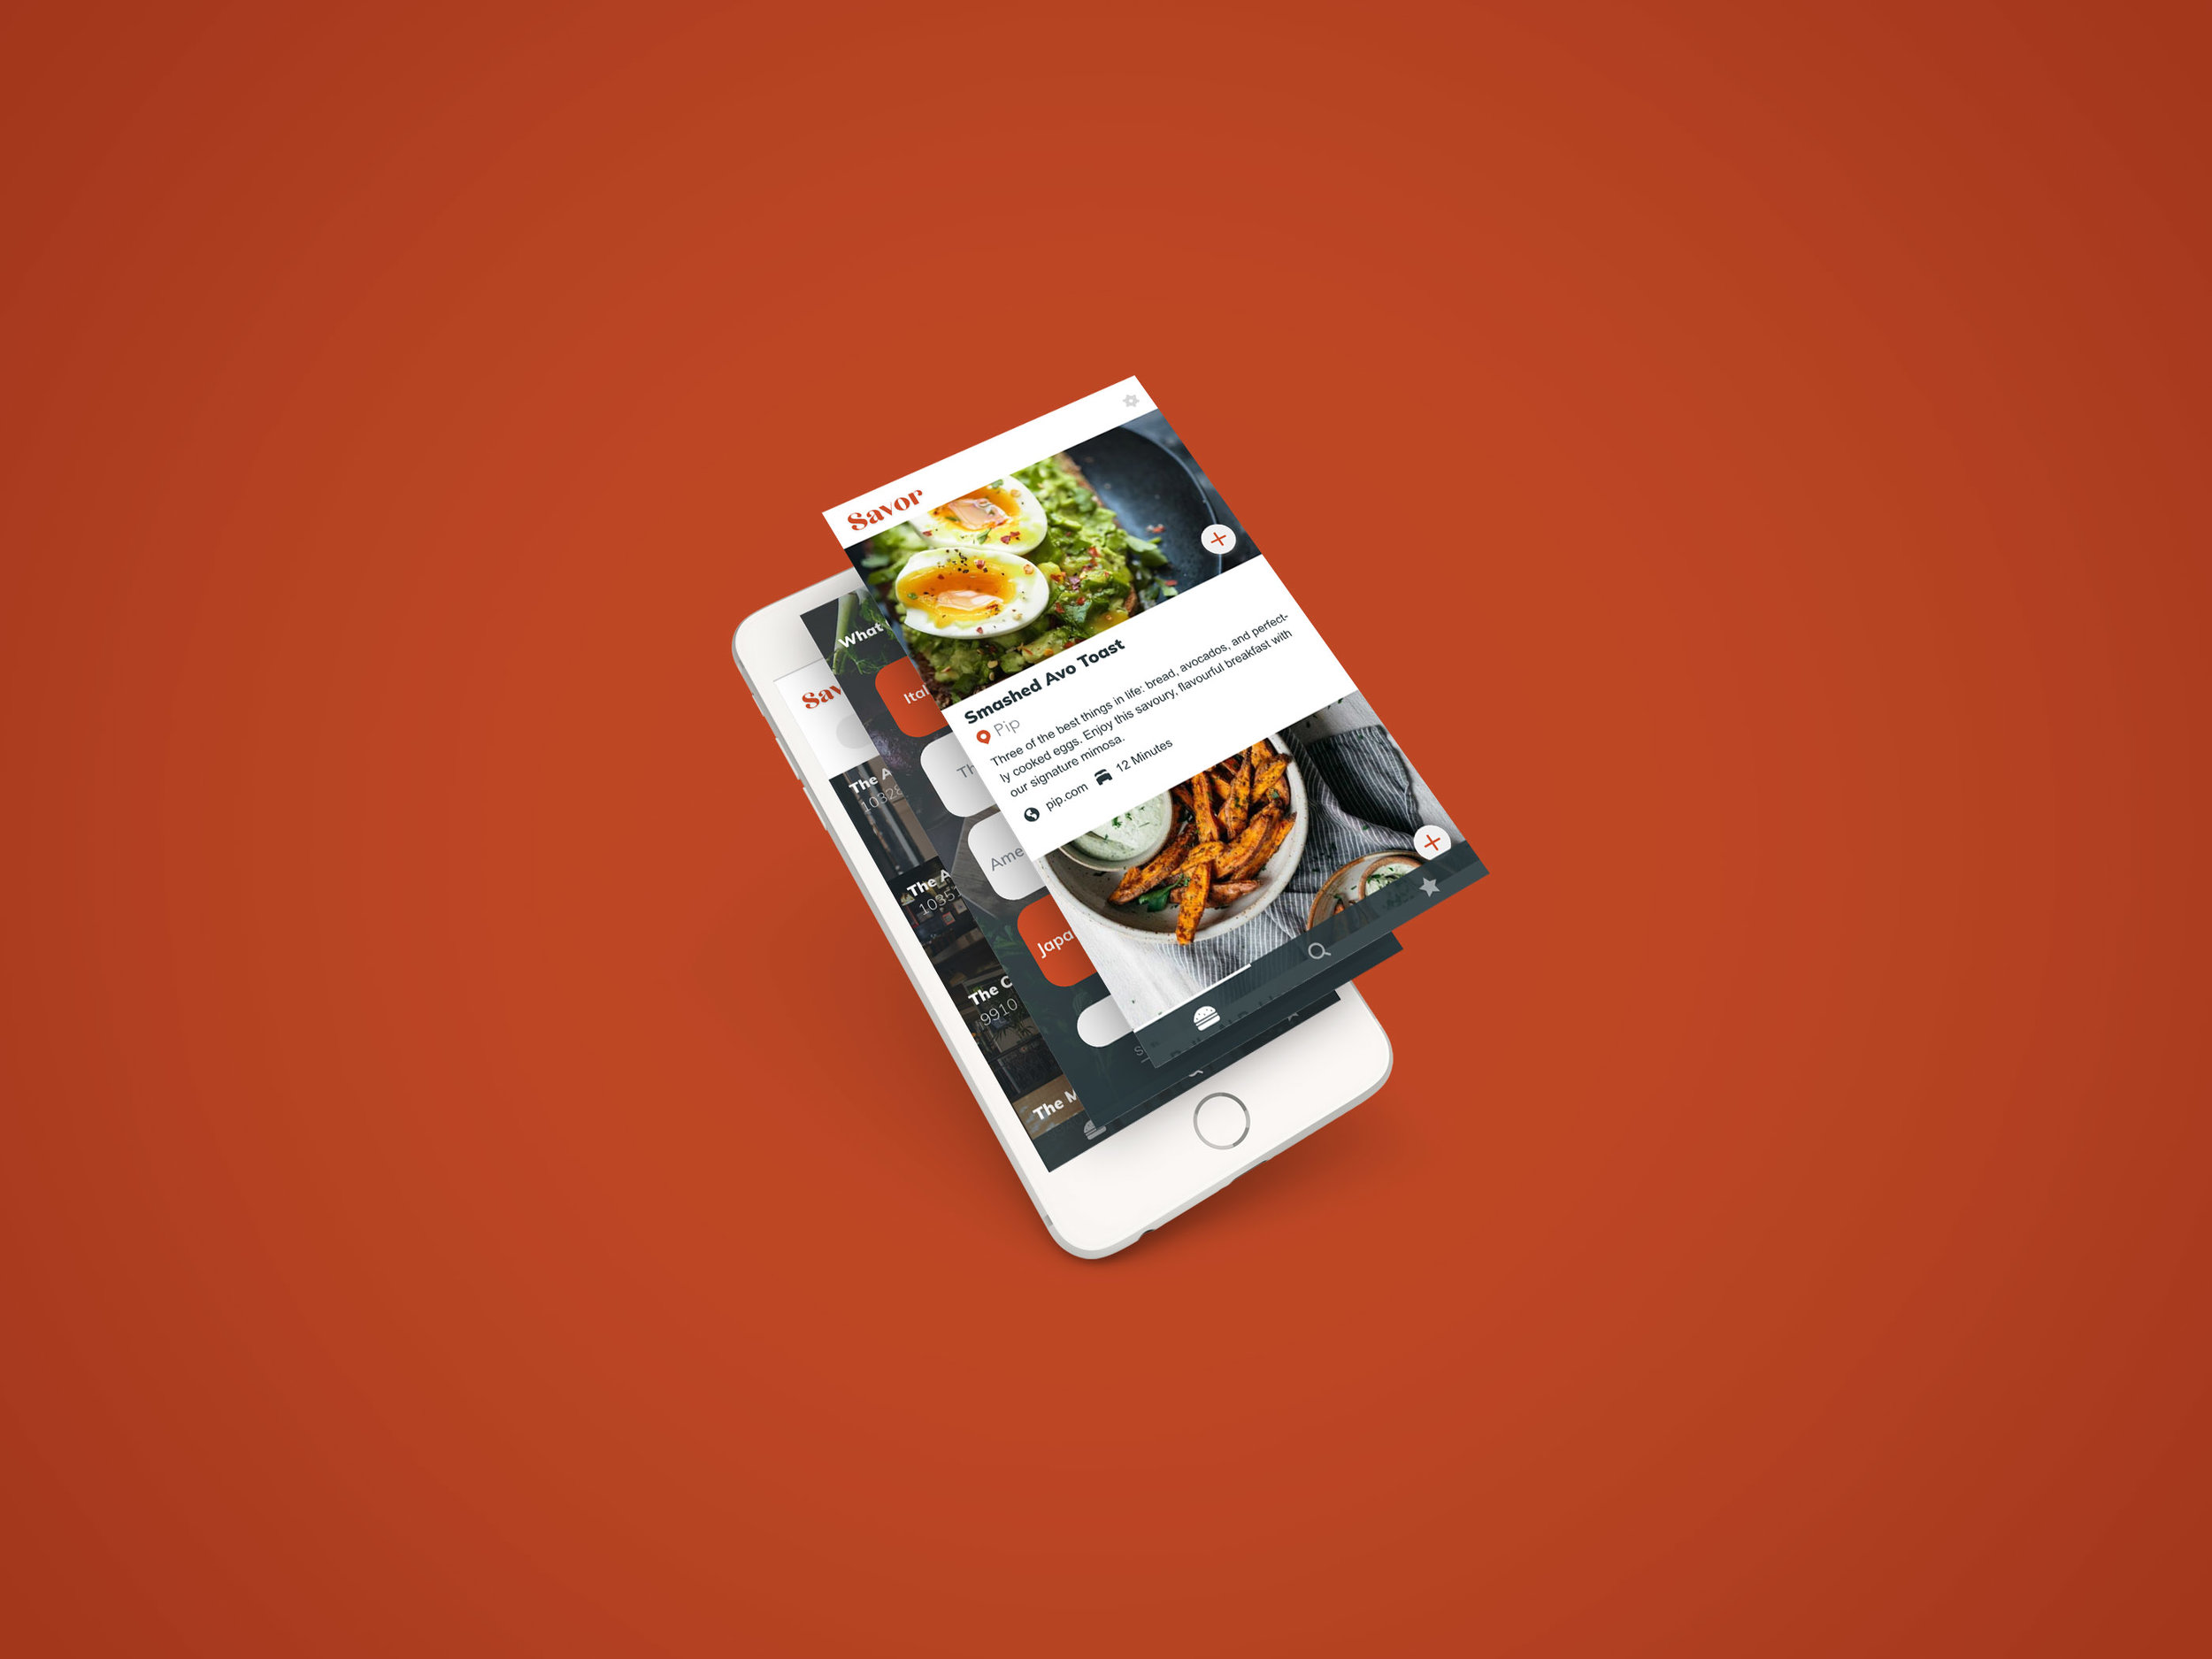 Savor - The App For Foodies